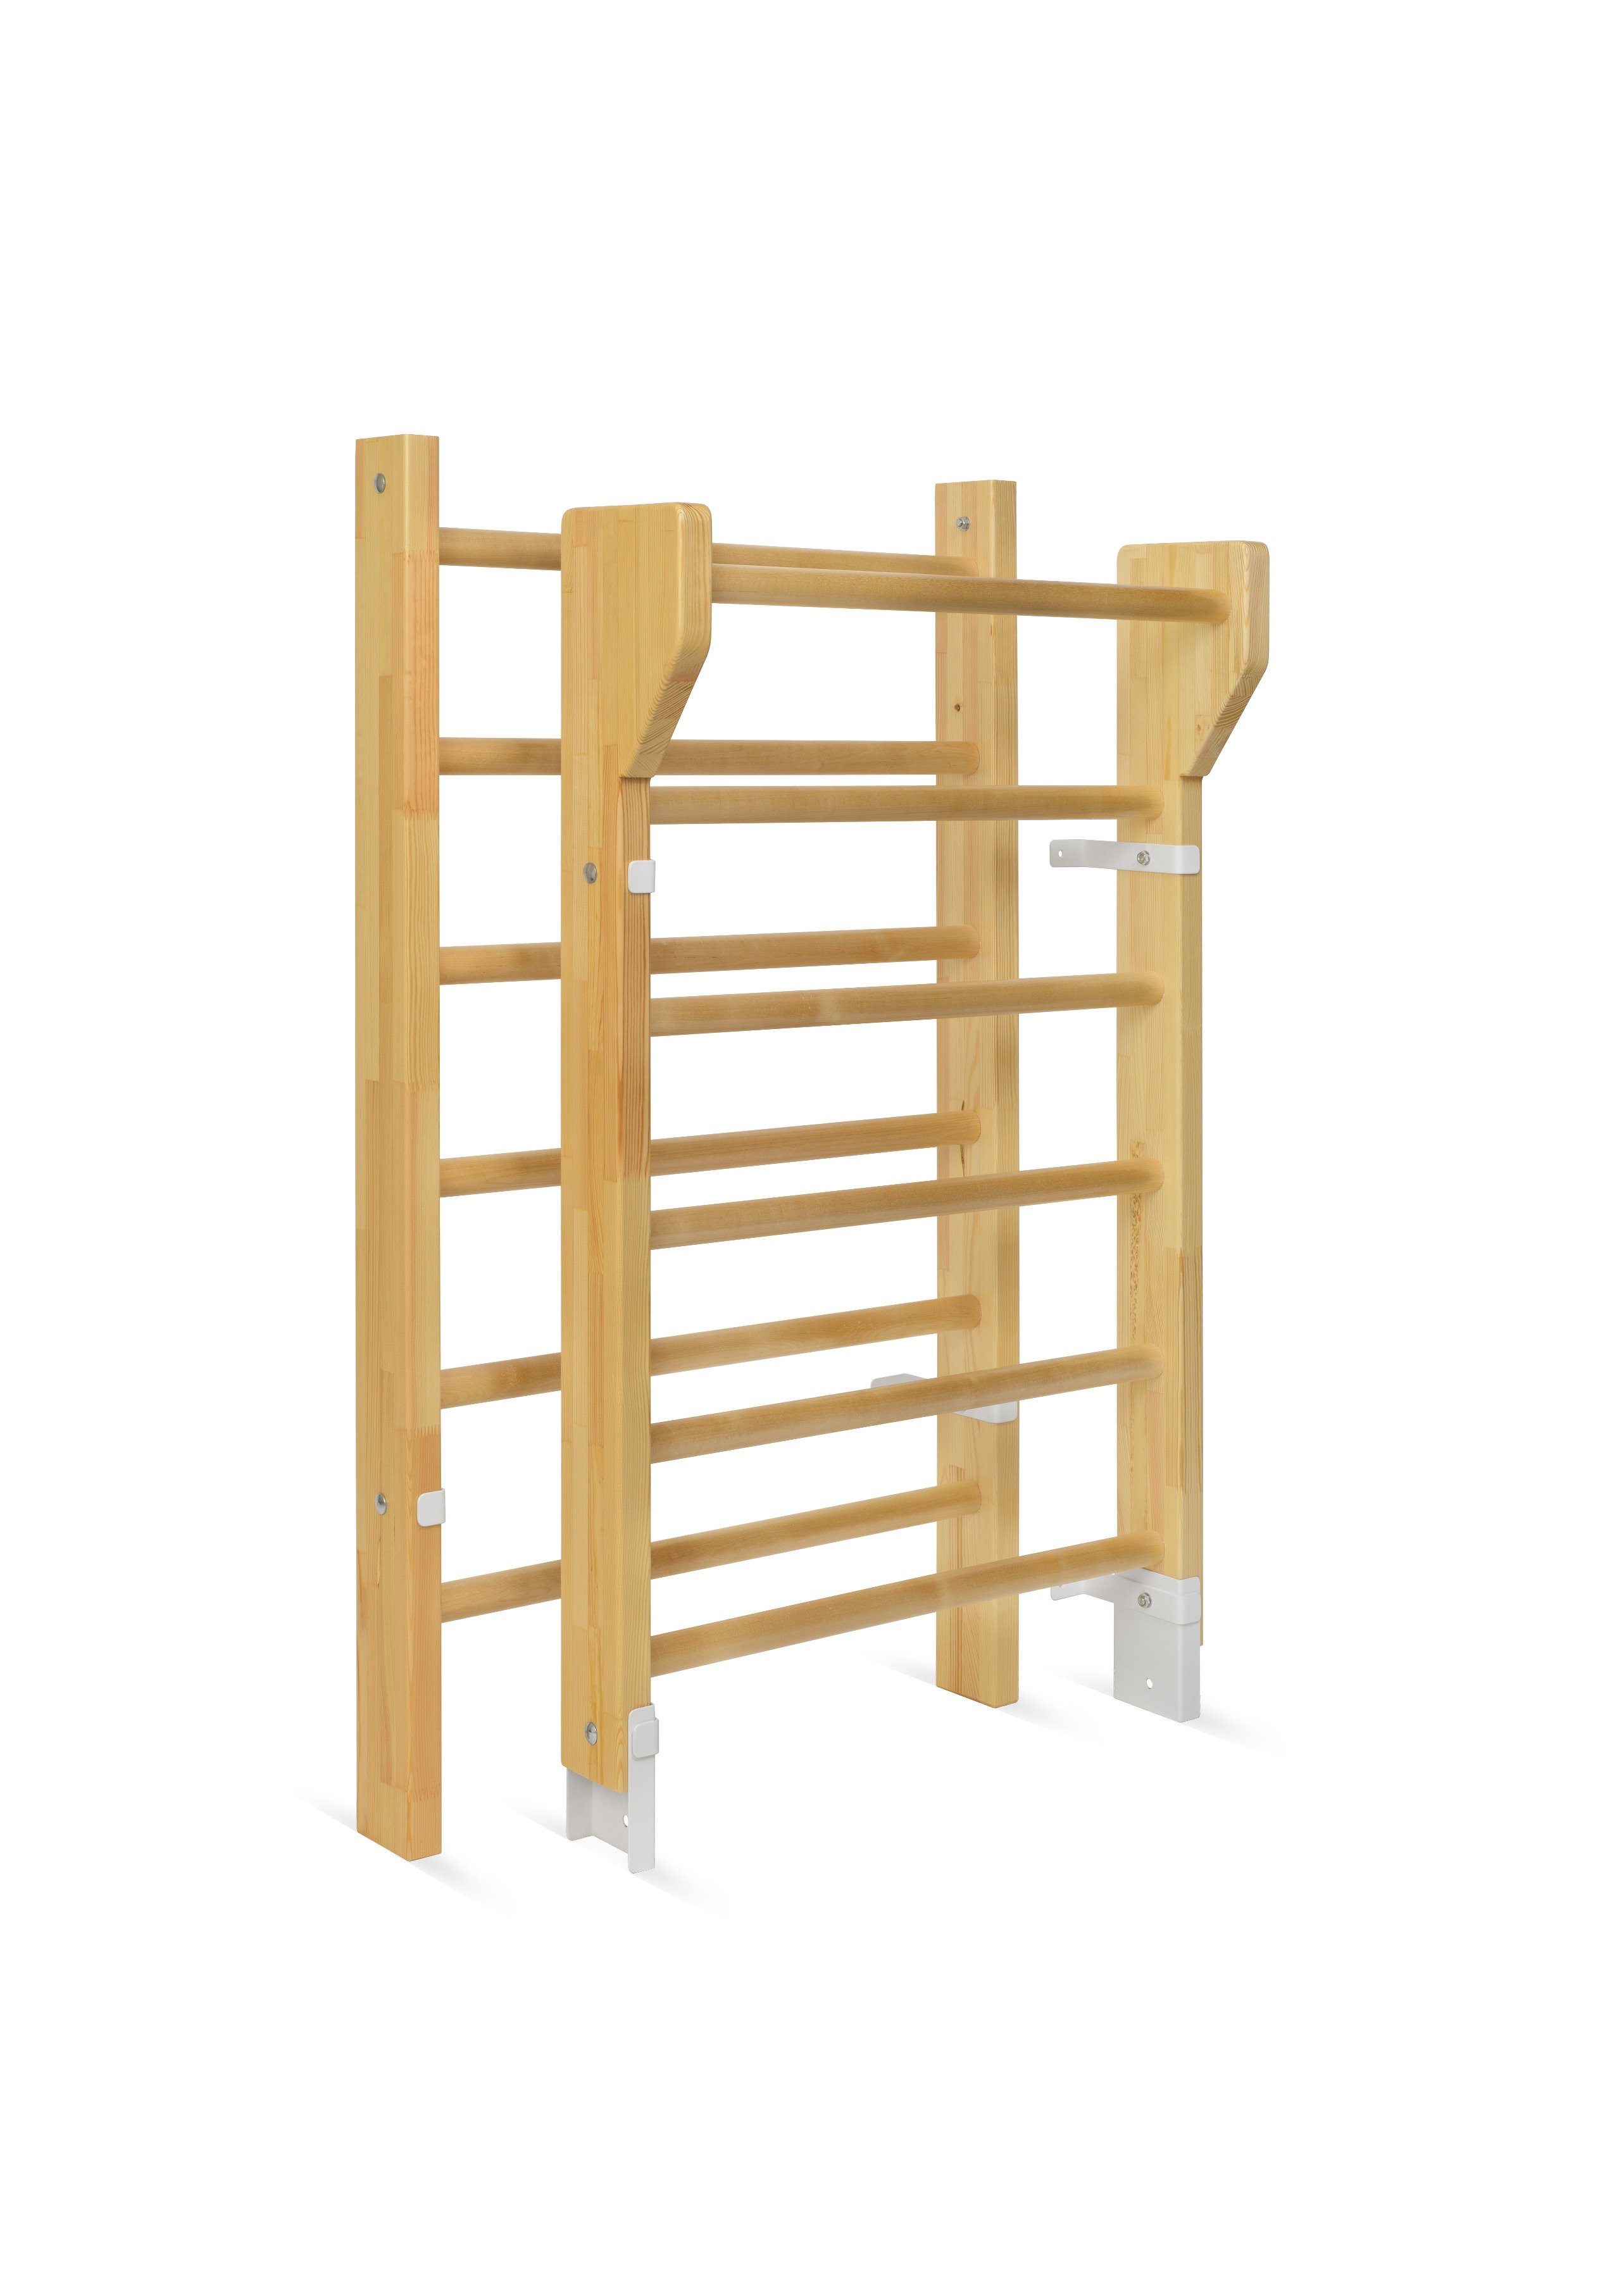 Gym Wall Bars Wooden Wall Bars Wall Mounted Sport And